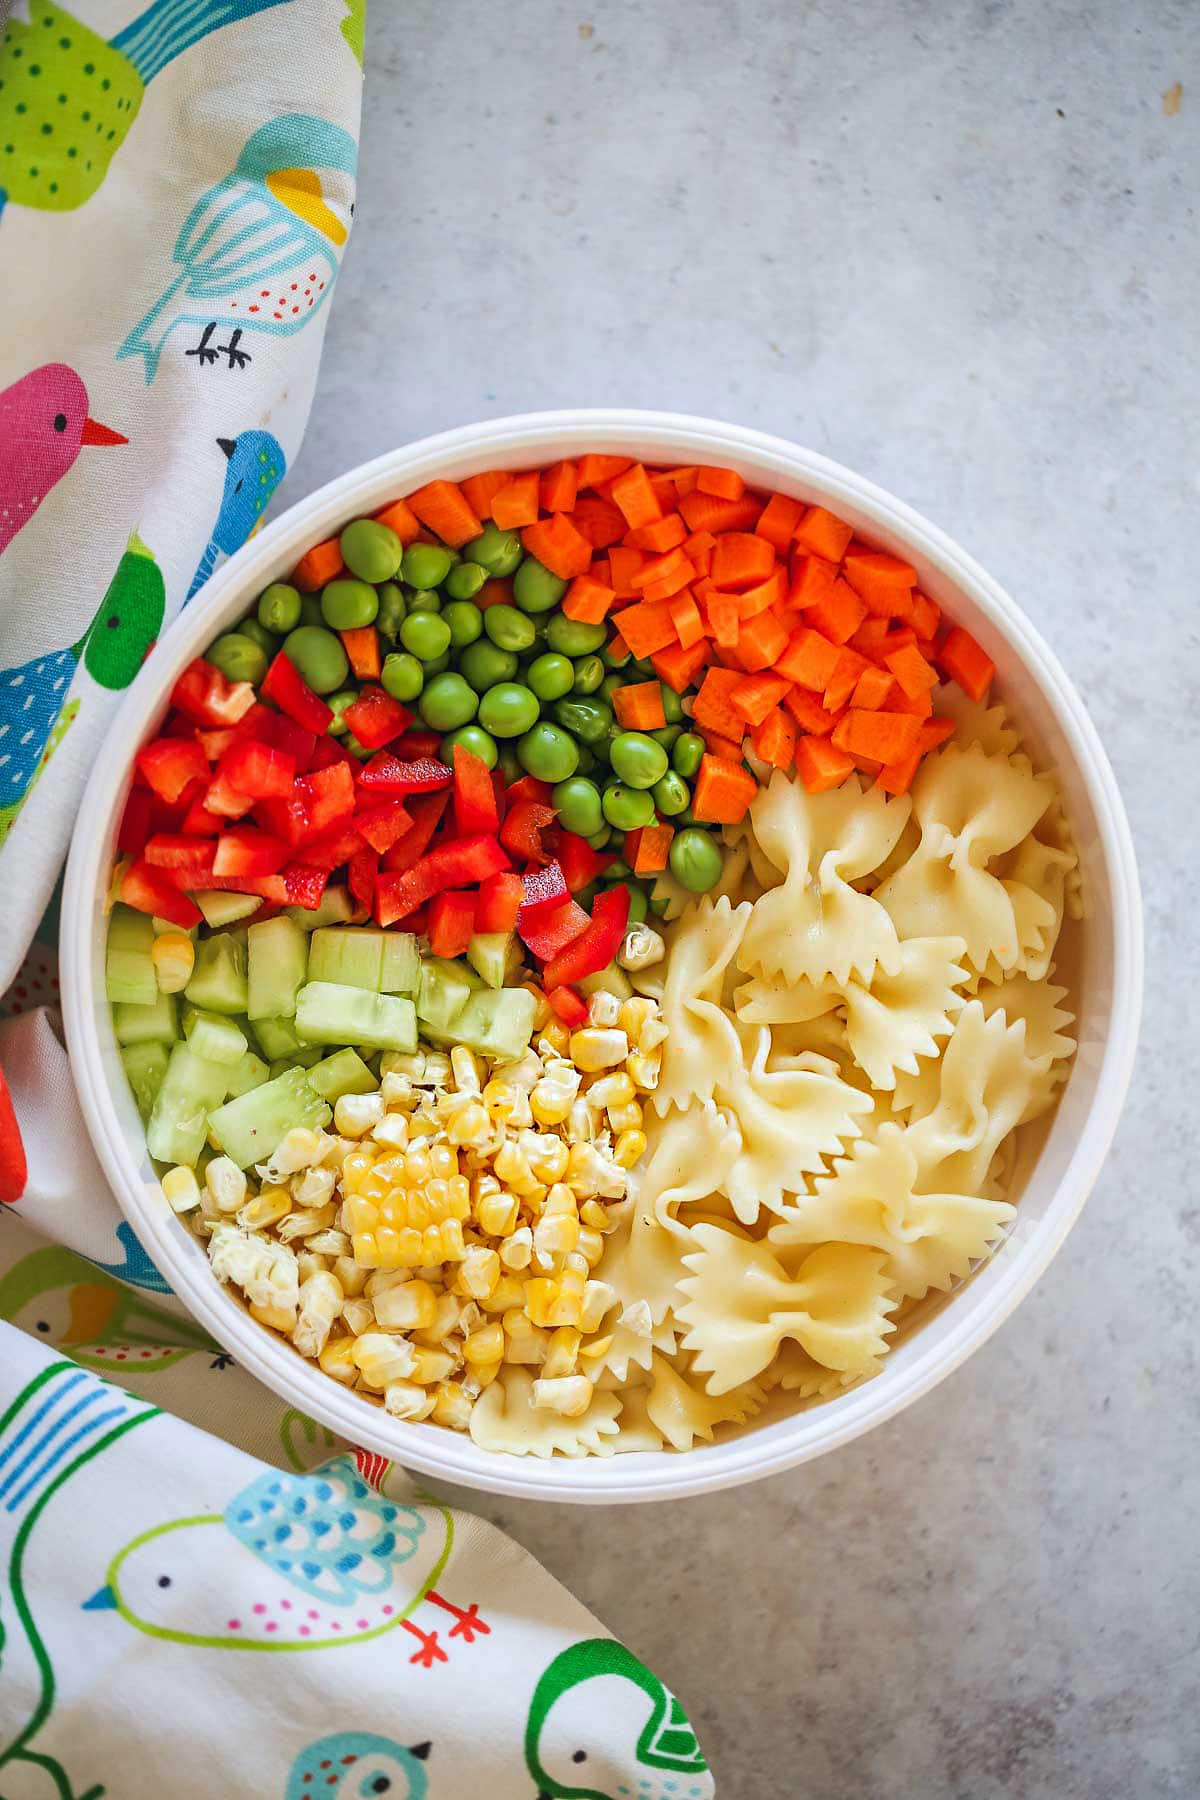 The ingredients of the pasta salad layered in a white bowl, and a bird pattern kitchen towel around it